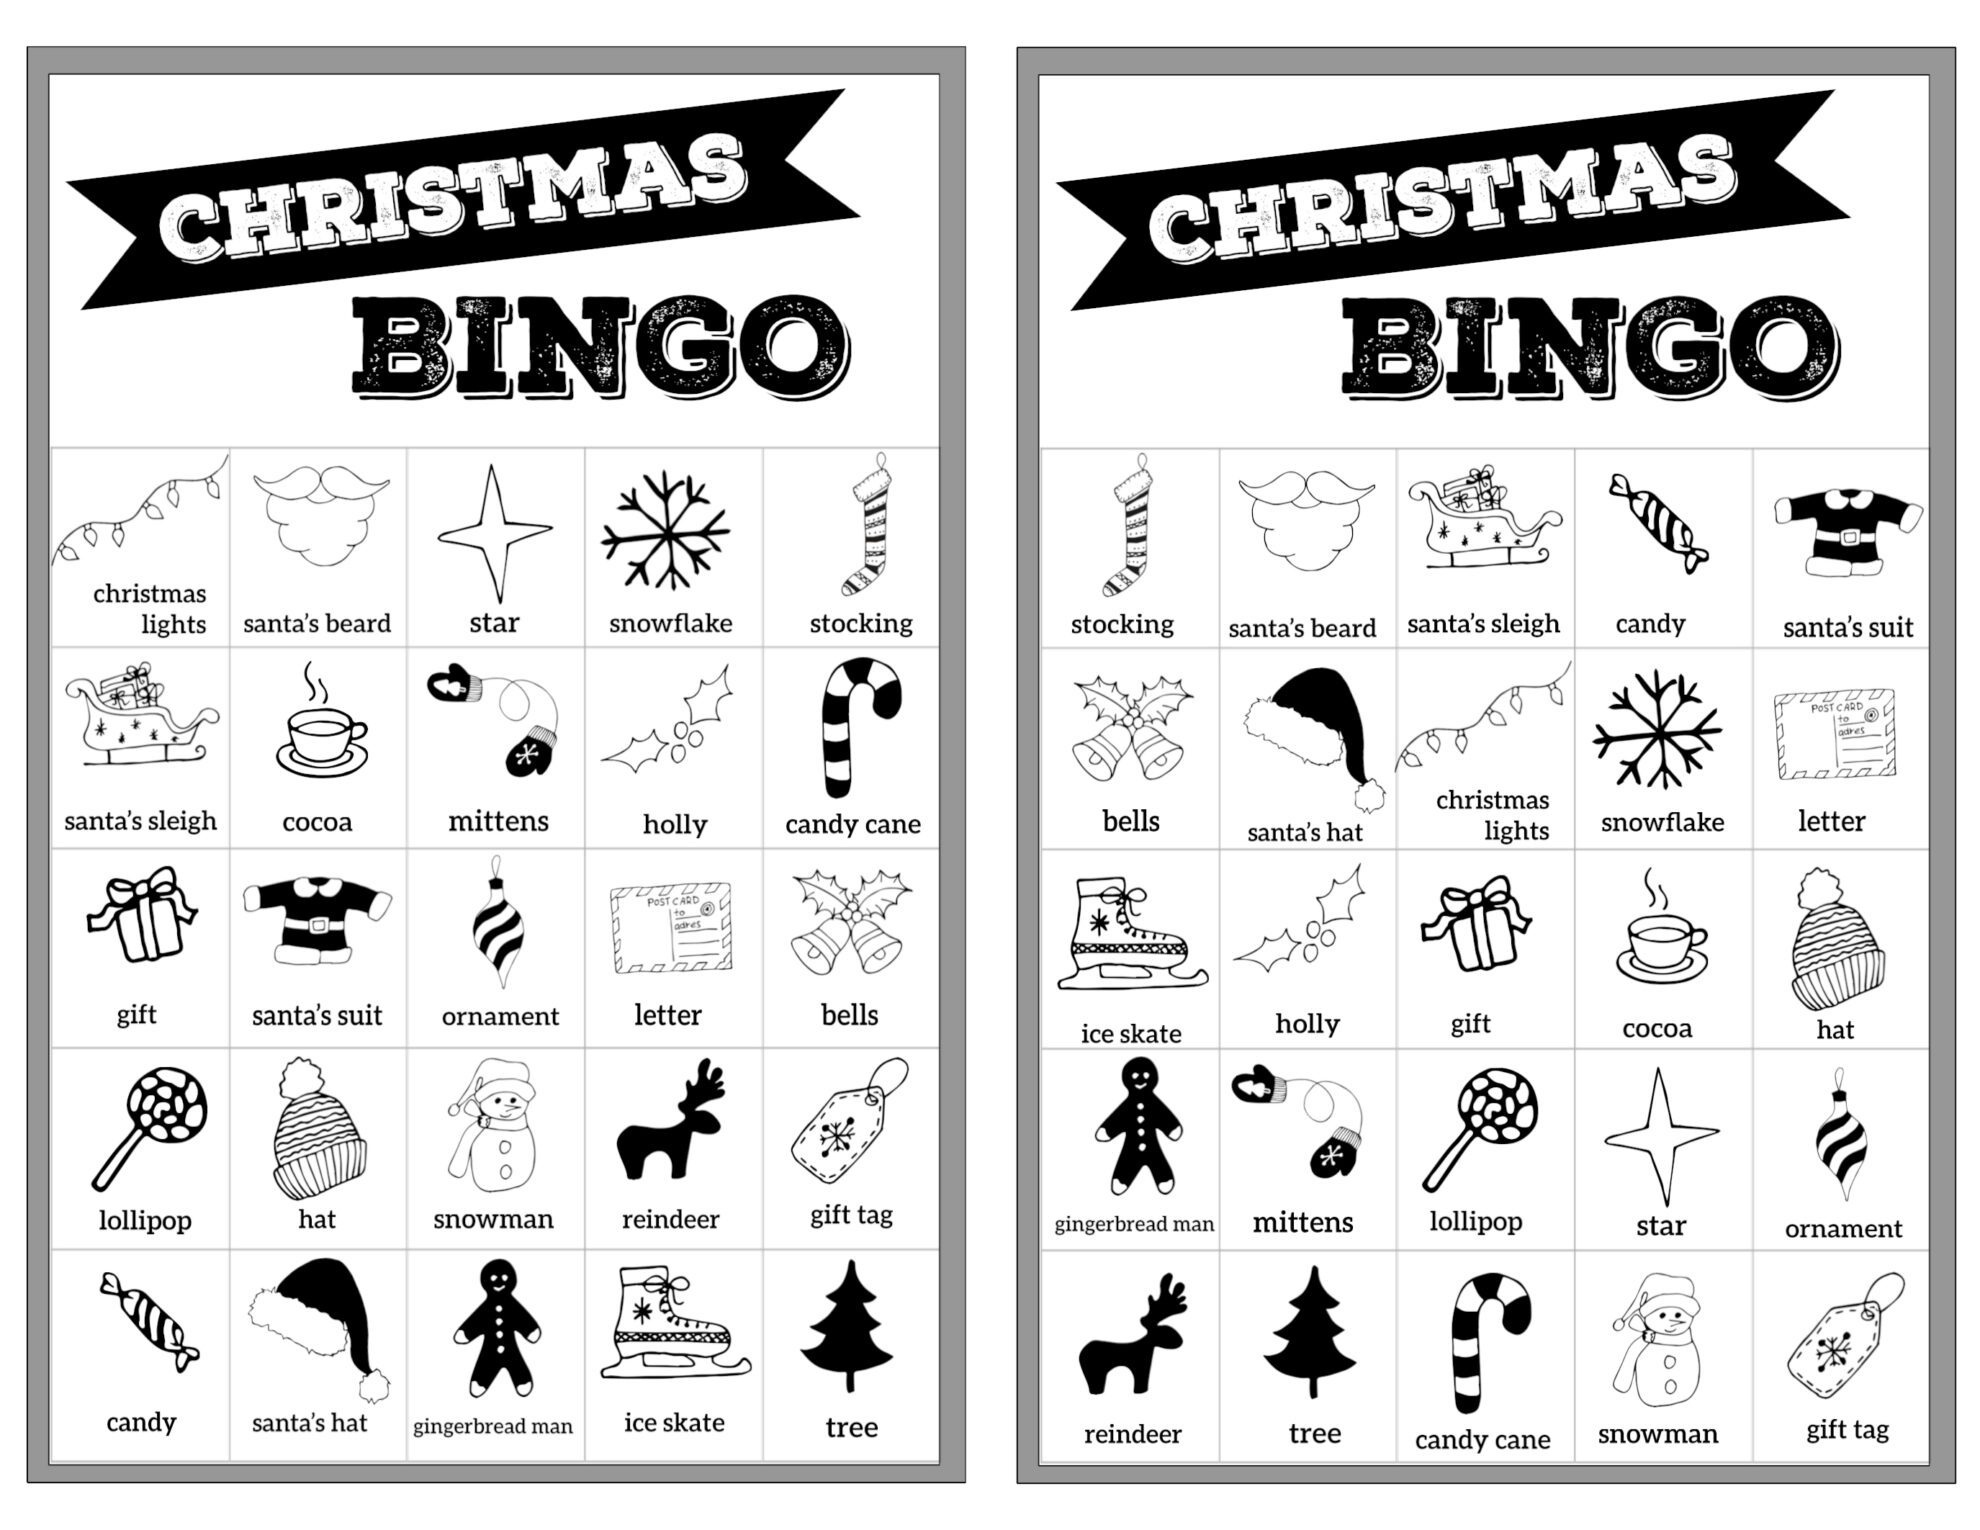 Free Christmas Bingo Printable Cards - Paper Trail Design - Free Printable Christmas Bingo Cards